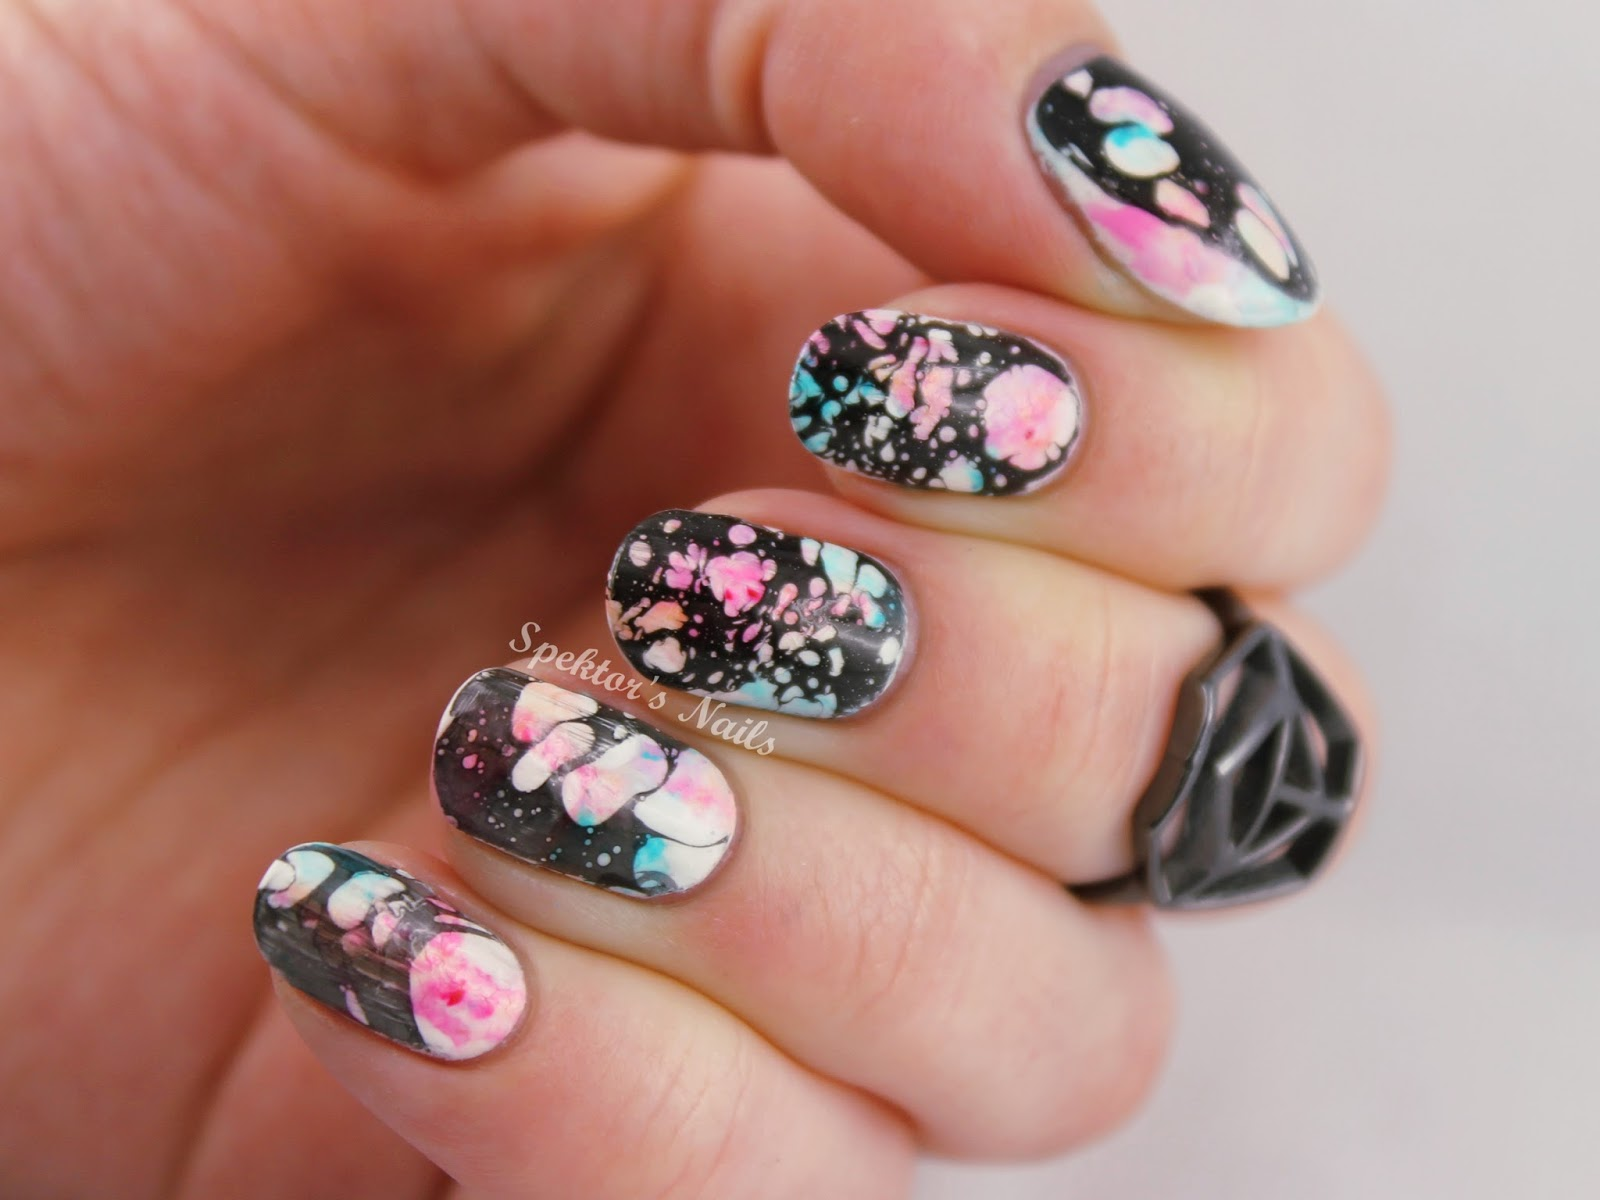 Marble Nails inspired by Madeline Poole